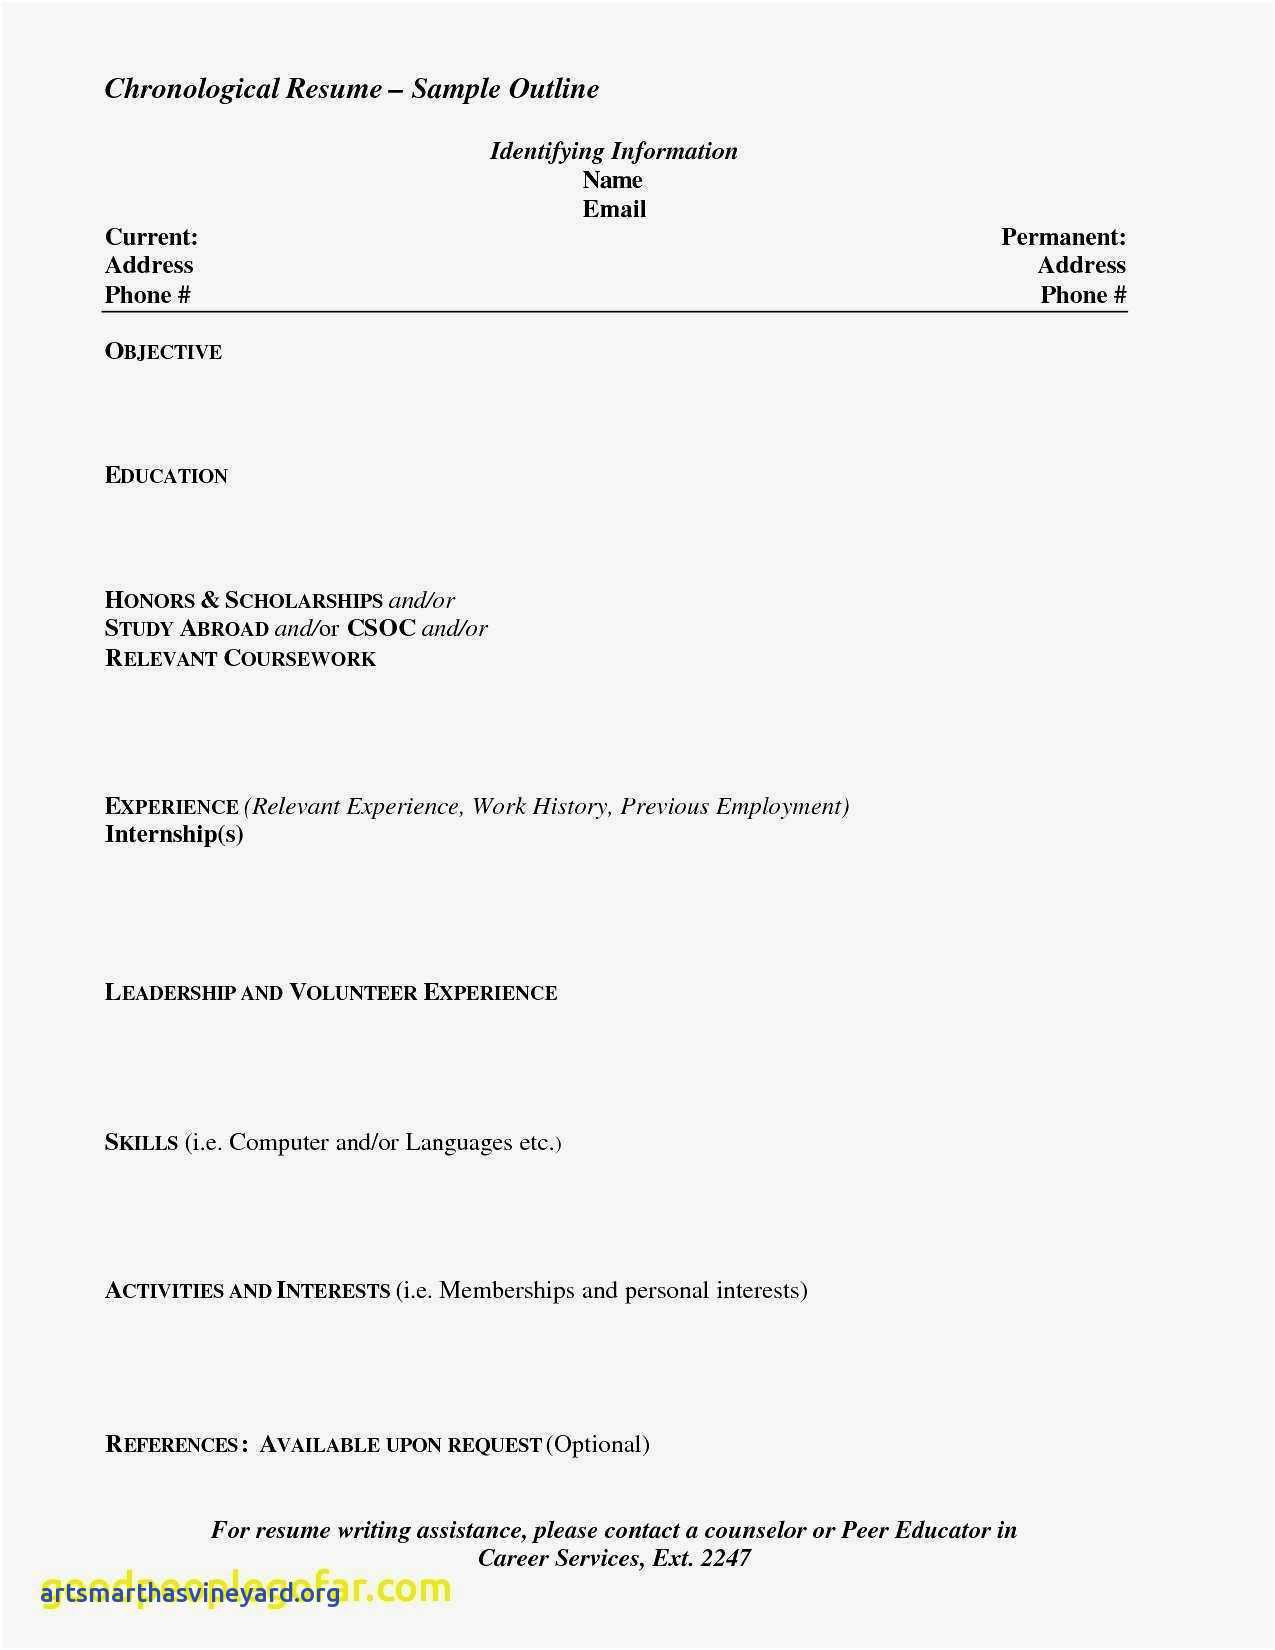 Middle School Resume Template - Resume Templates High School Students No Experience Simple Unique